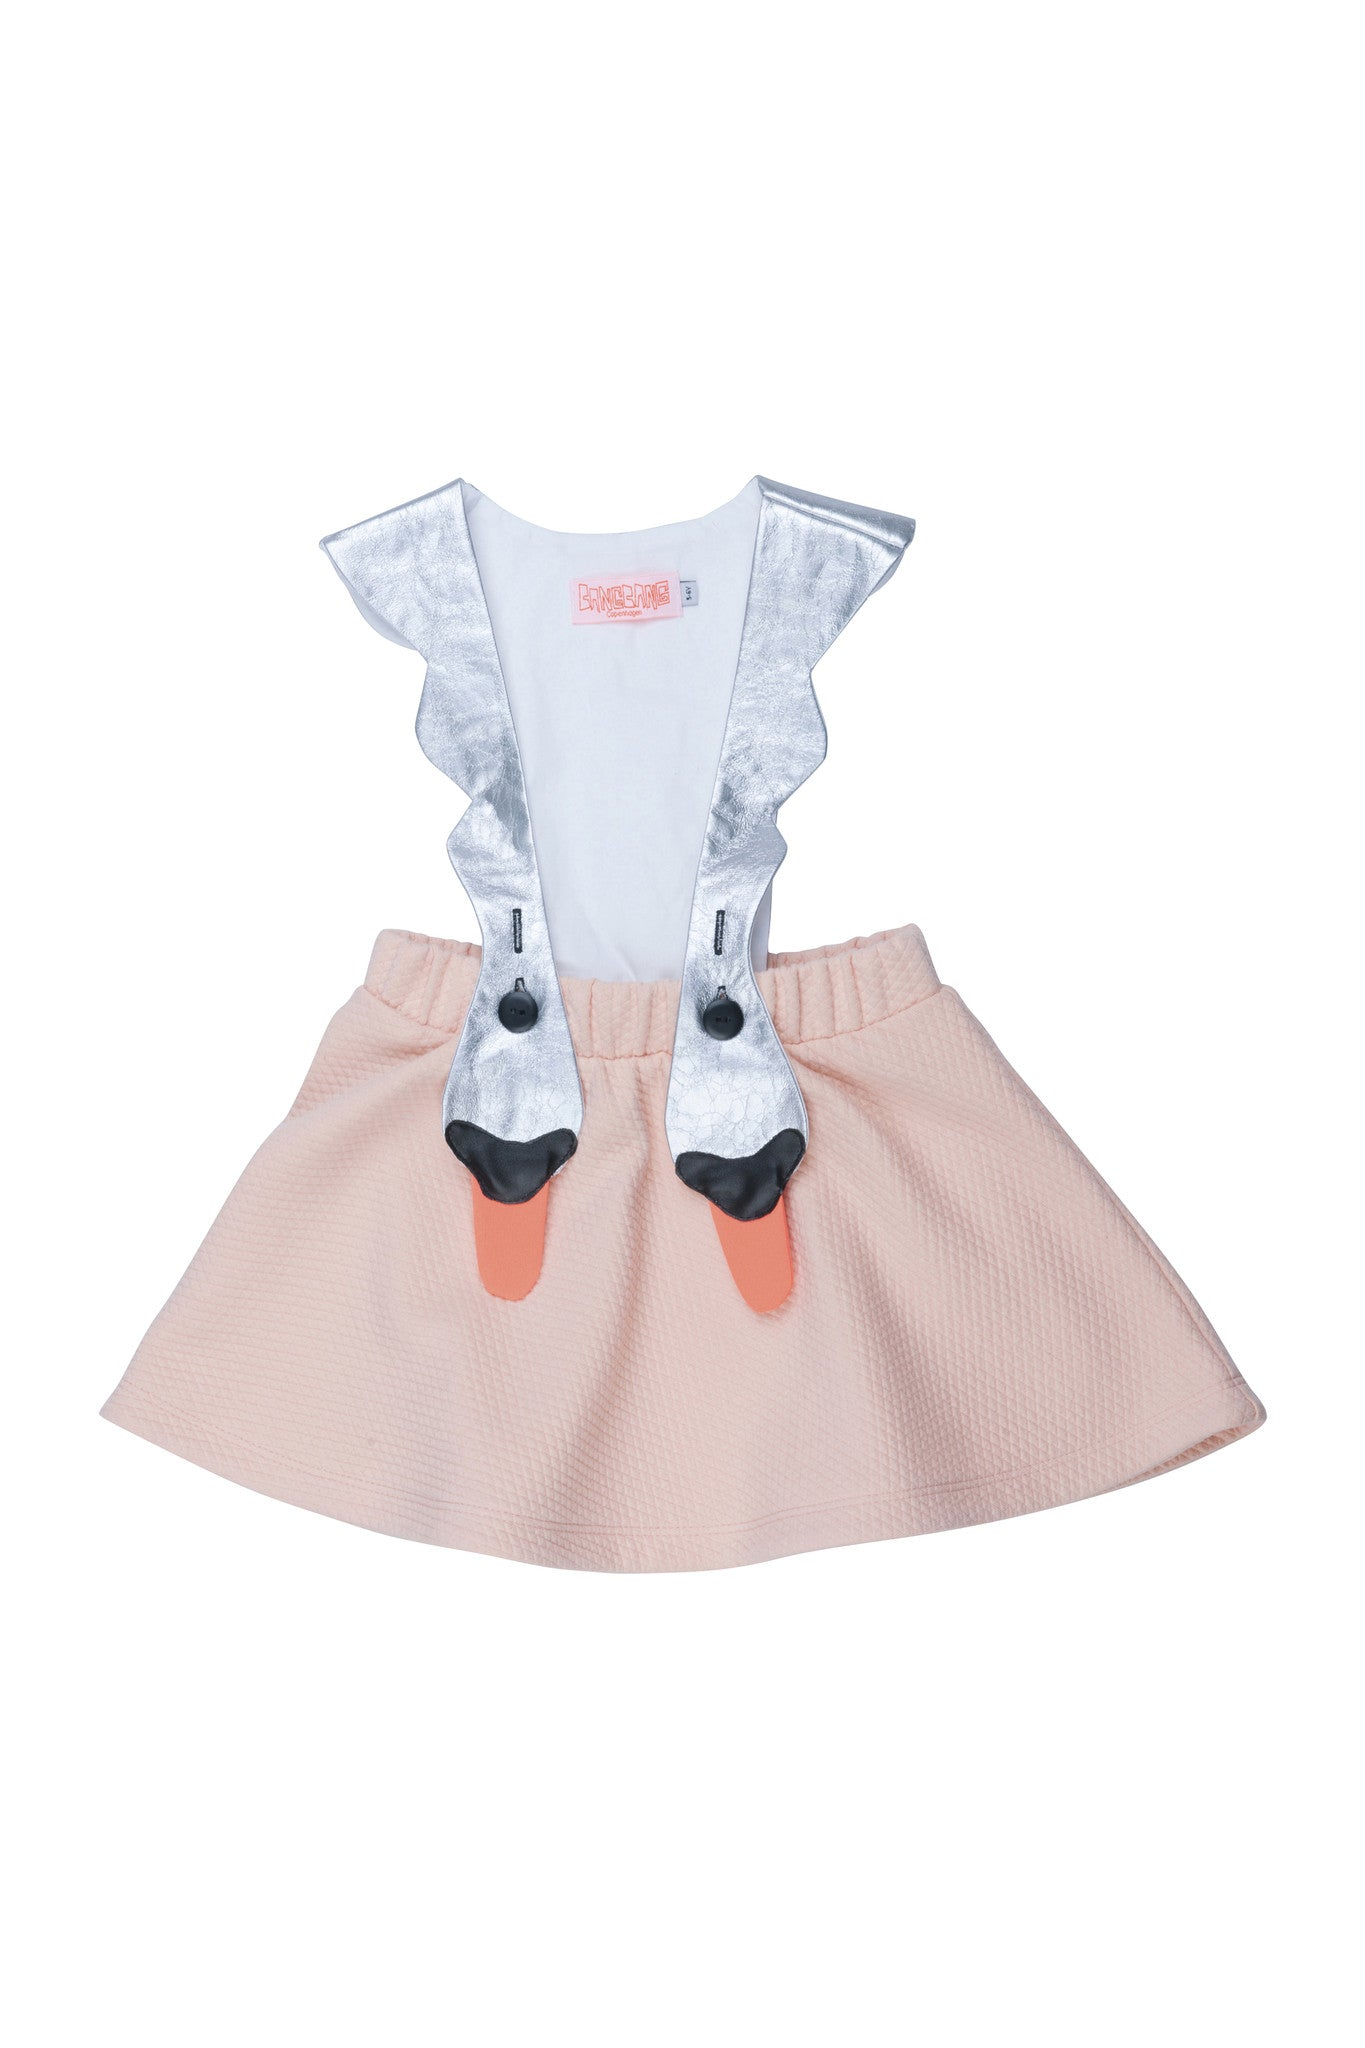 Bang Bang Pink Bird Girl Dress - Ladida